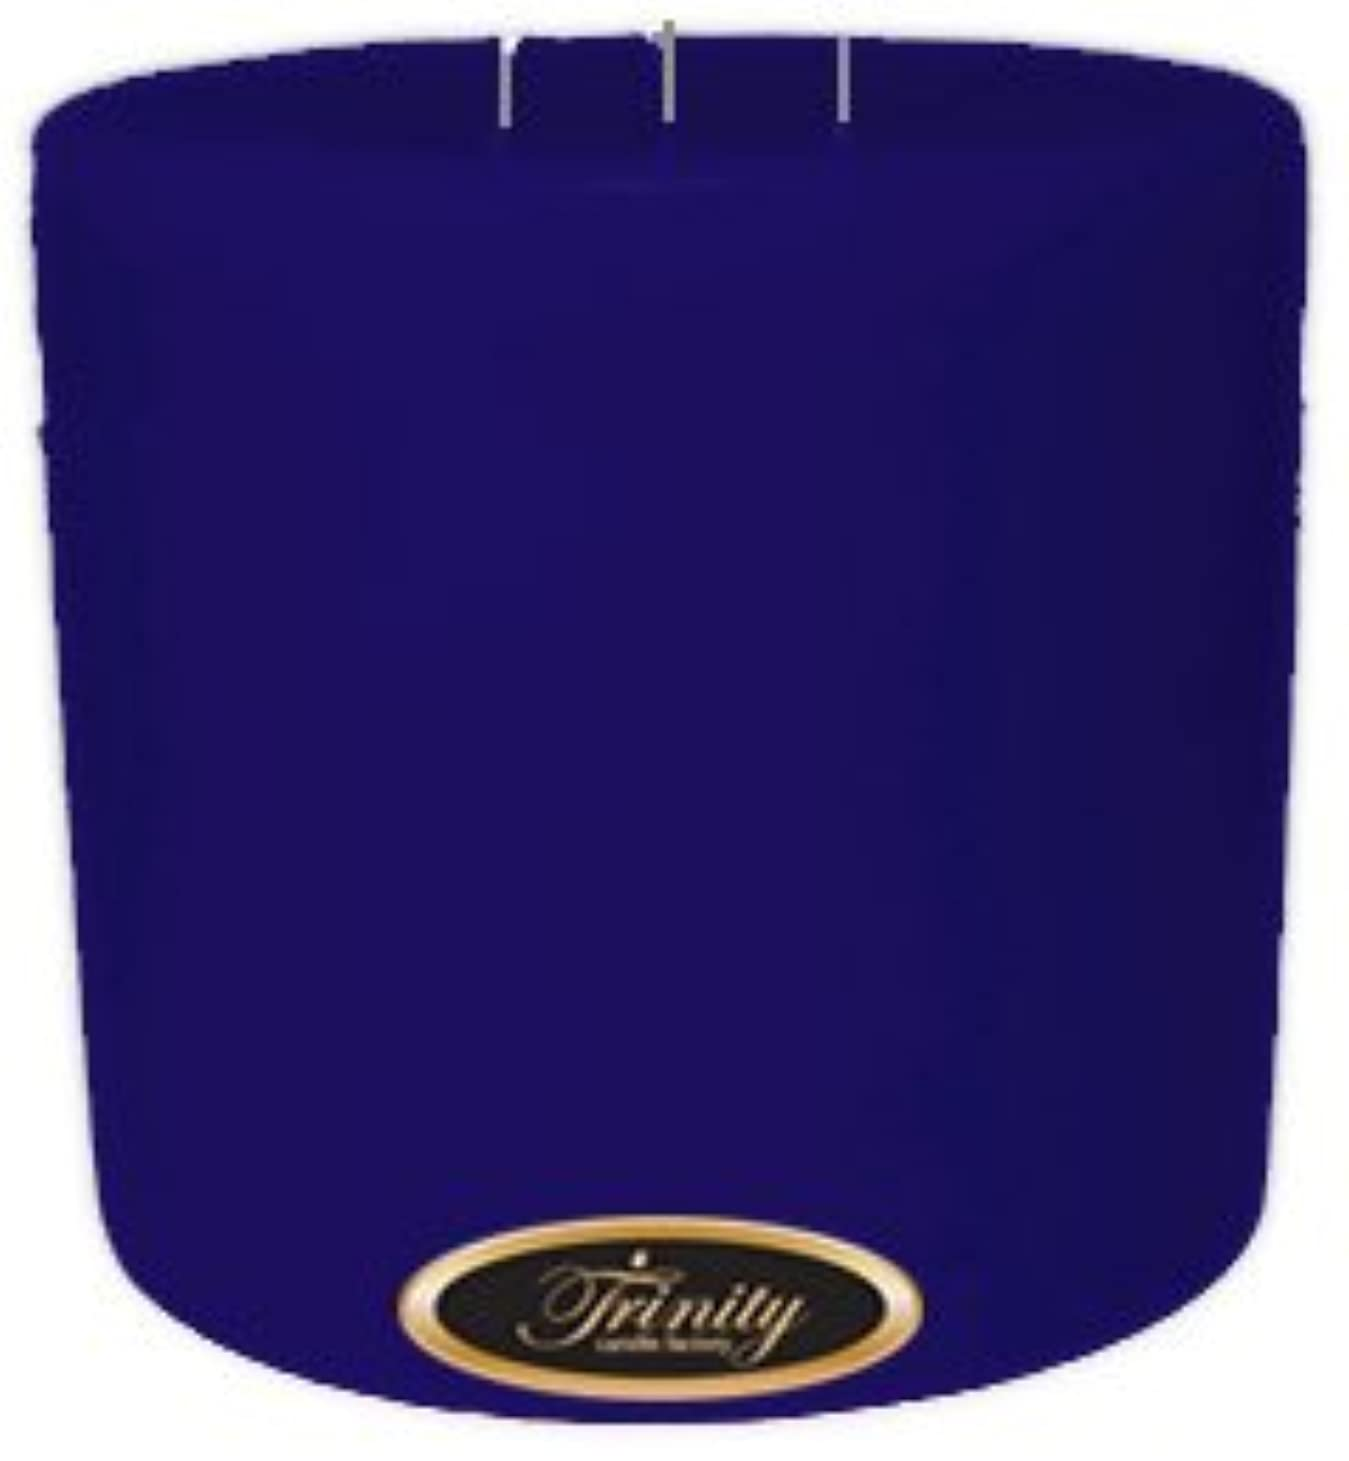 悪化させる歩き回る方法Trinity Candle工場 – Blueberry Fields – Pillar Candle – 6 x 6